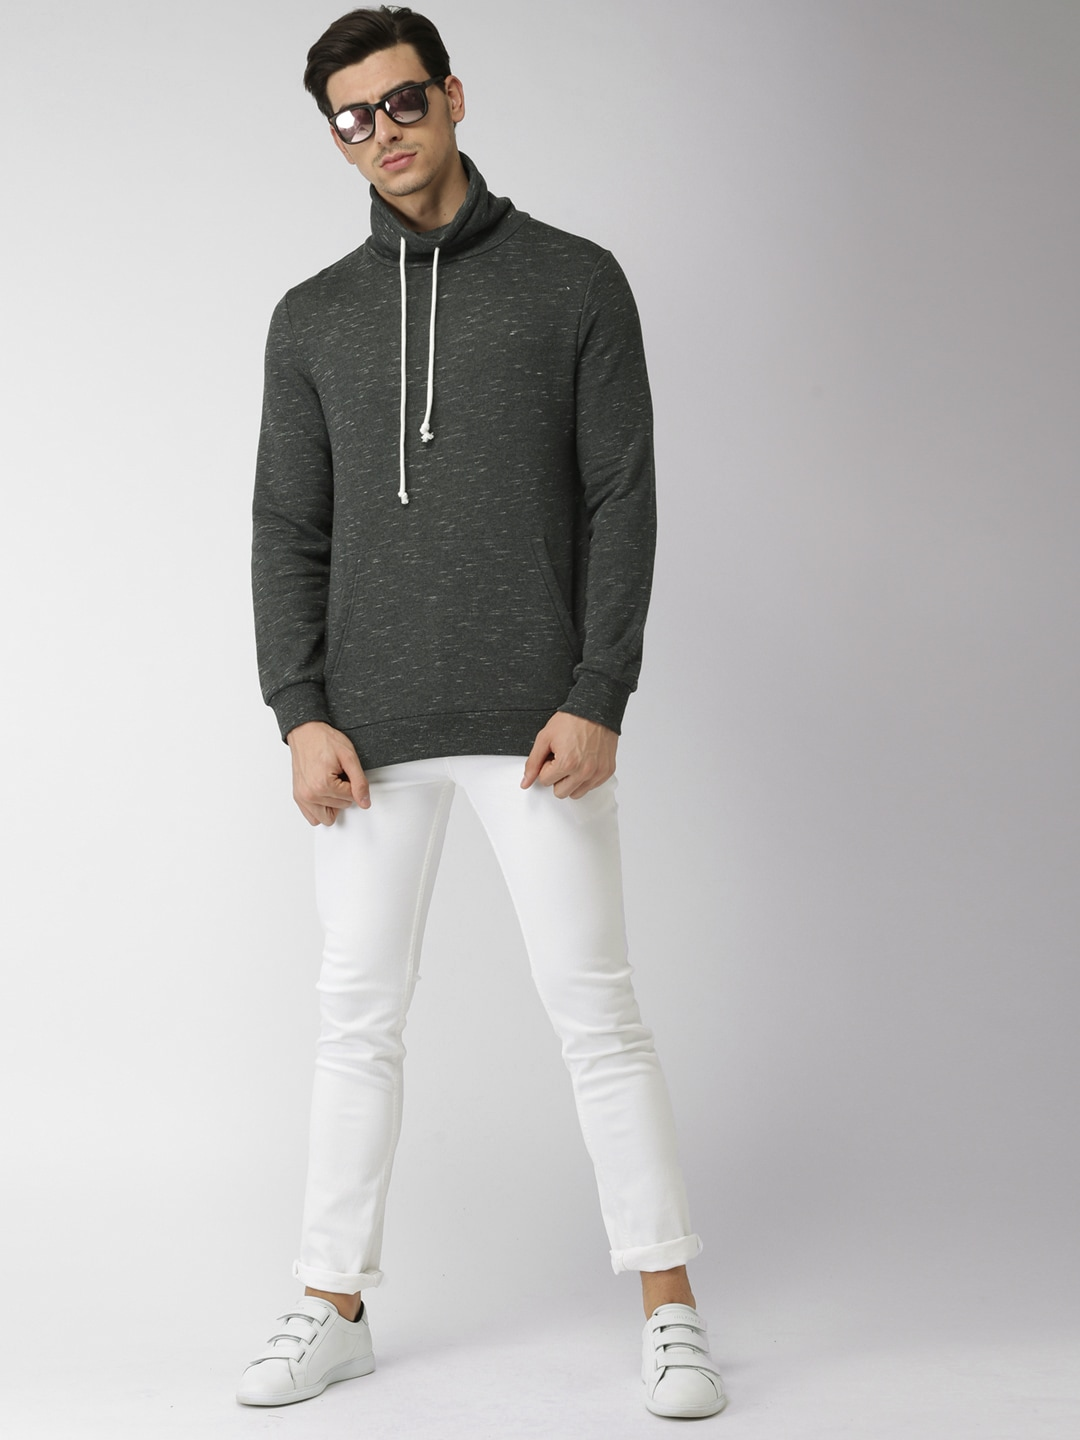 Buy FOREVER 21 Charcoal Grey Self Design Men Sweatshirt At Best Price